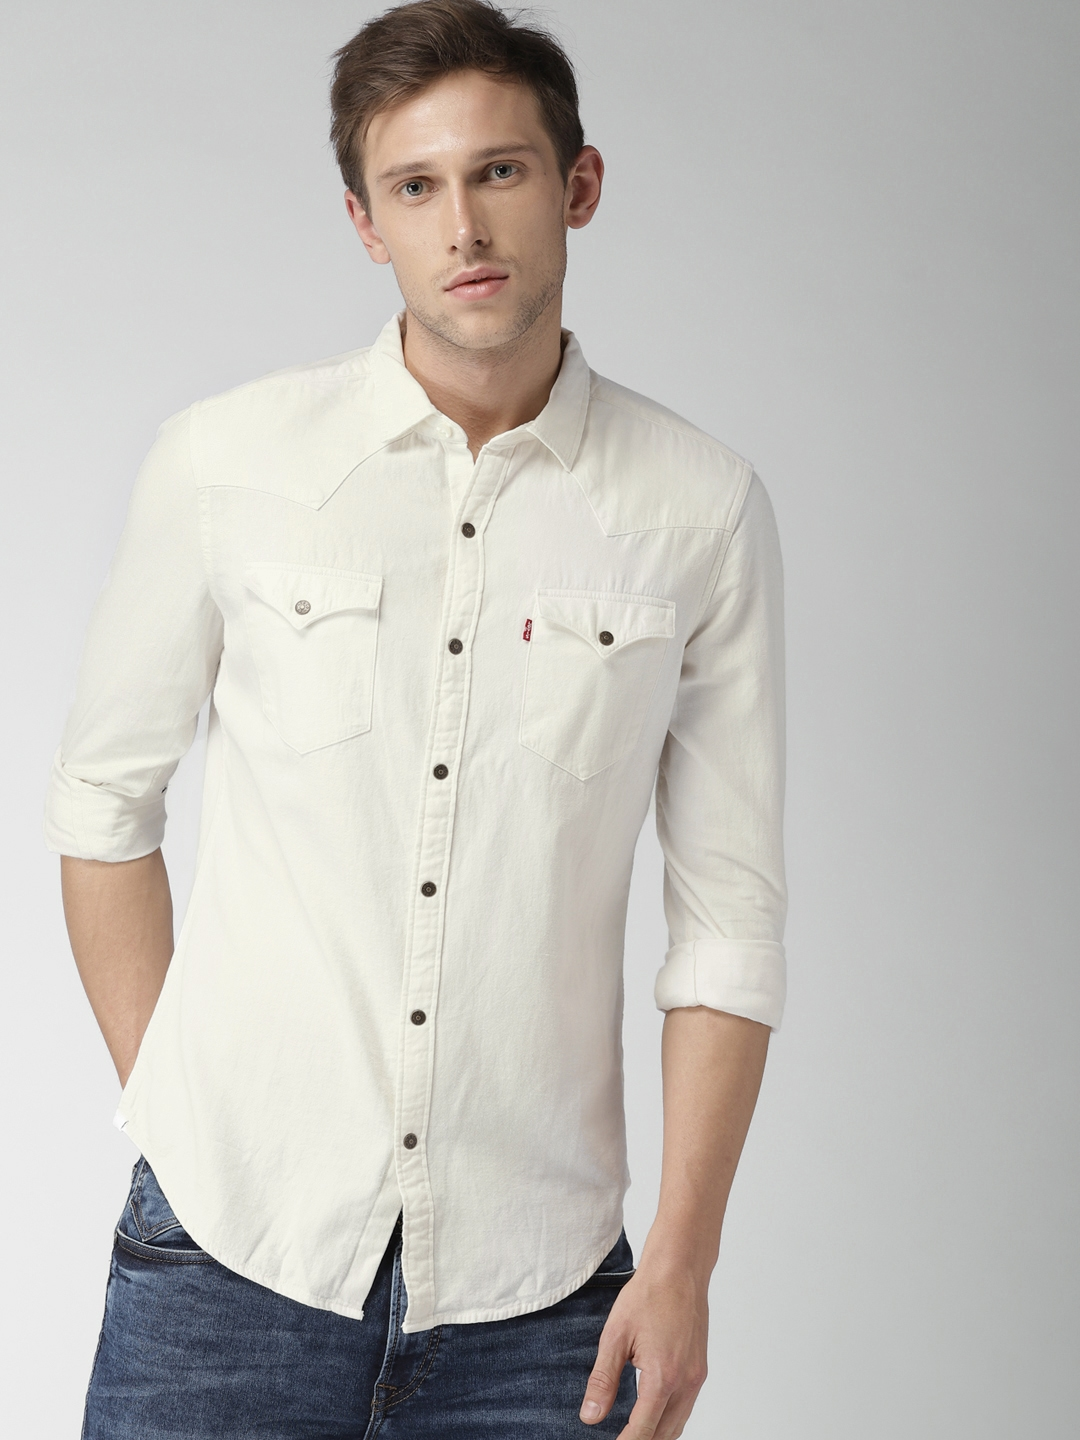 7a887ed716 Buy Levis Men White Slim Fit Solid Casual Shirt - Shirts for Men ...